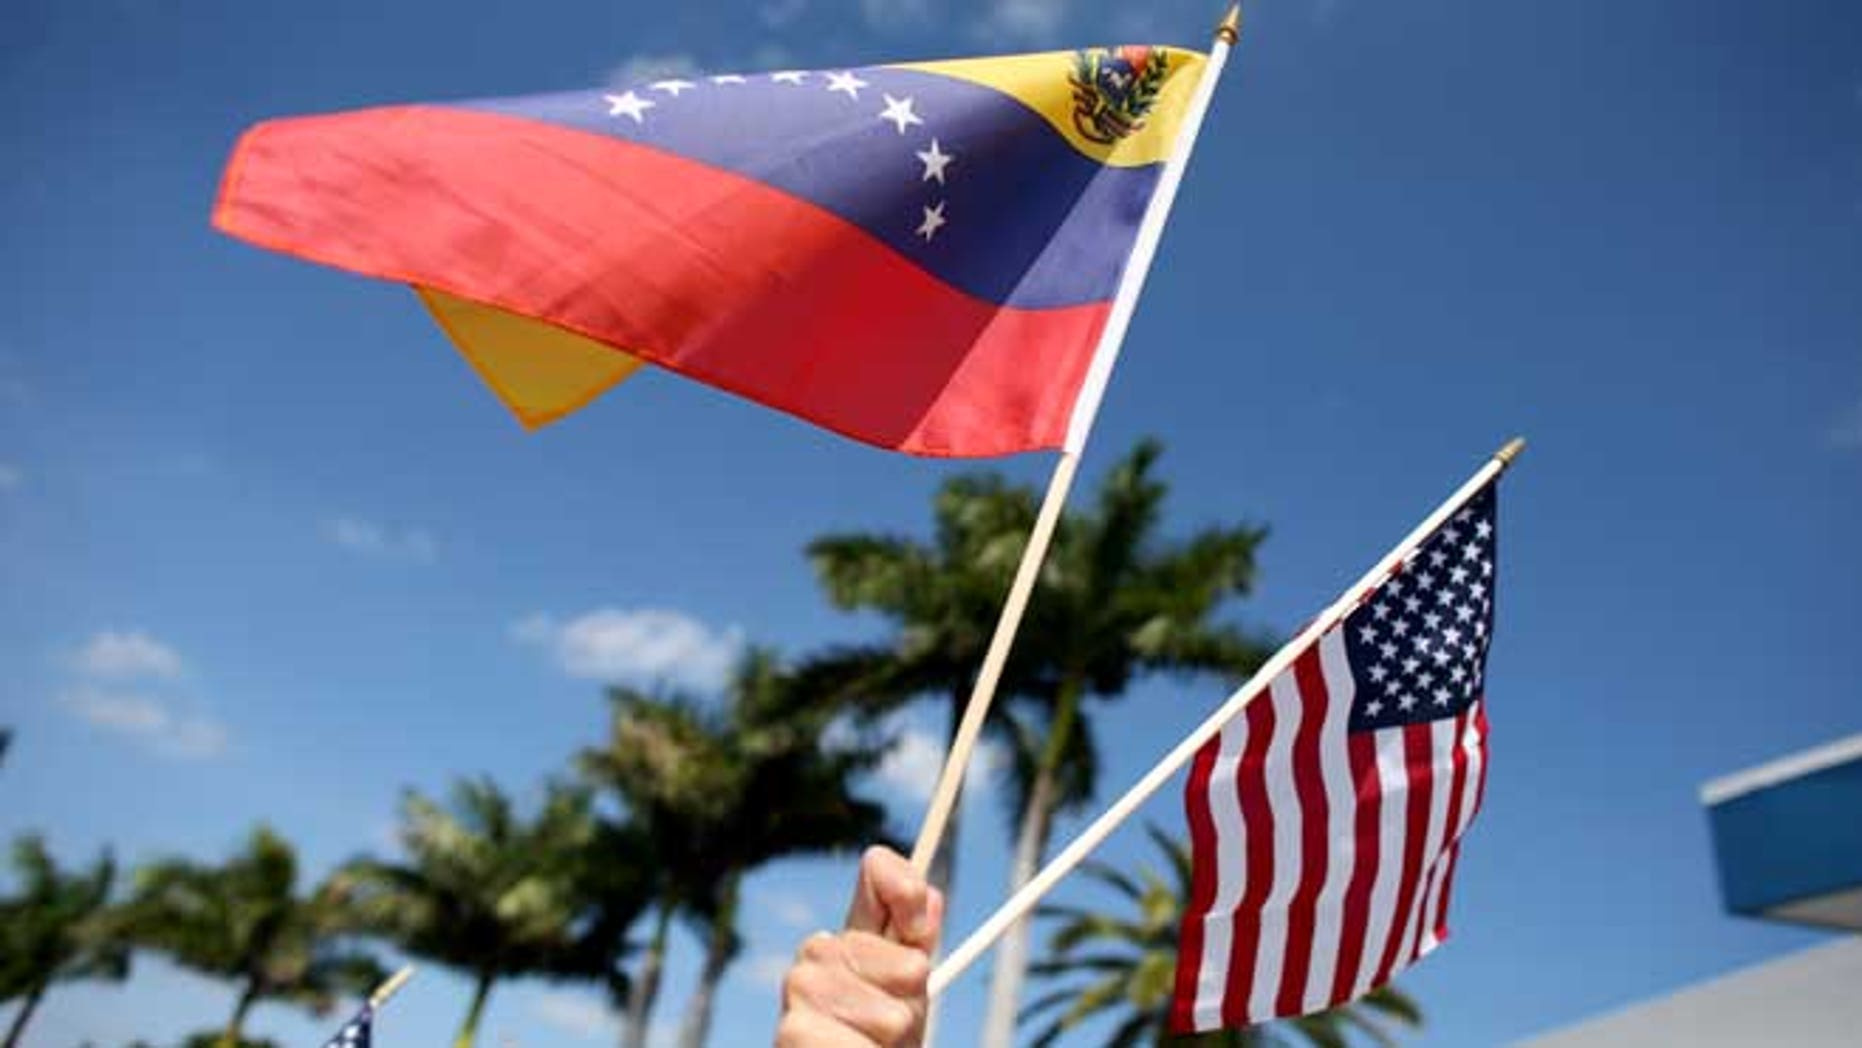 MIAMI, FL - MARCH 01:  A protester holds a Venezuelan and American flag as she and other Venezuelans and their supporters show their support for the anti-government protests in Venezuela on March 1, 2014 in Miami, Florida.  (Photo by Joe Raedle/Getty Images)